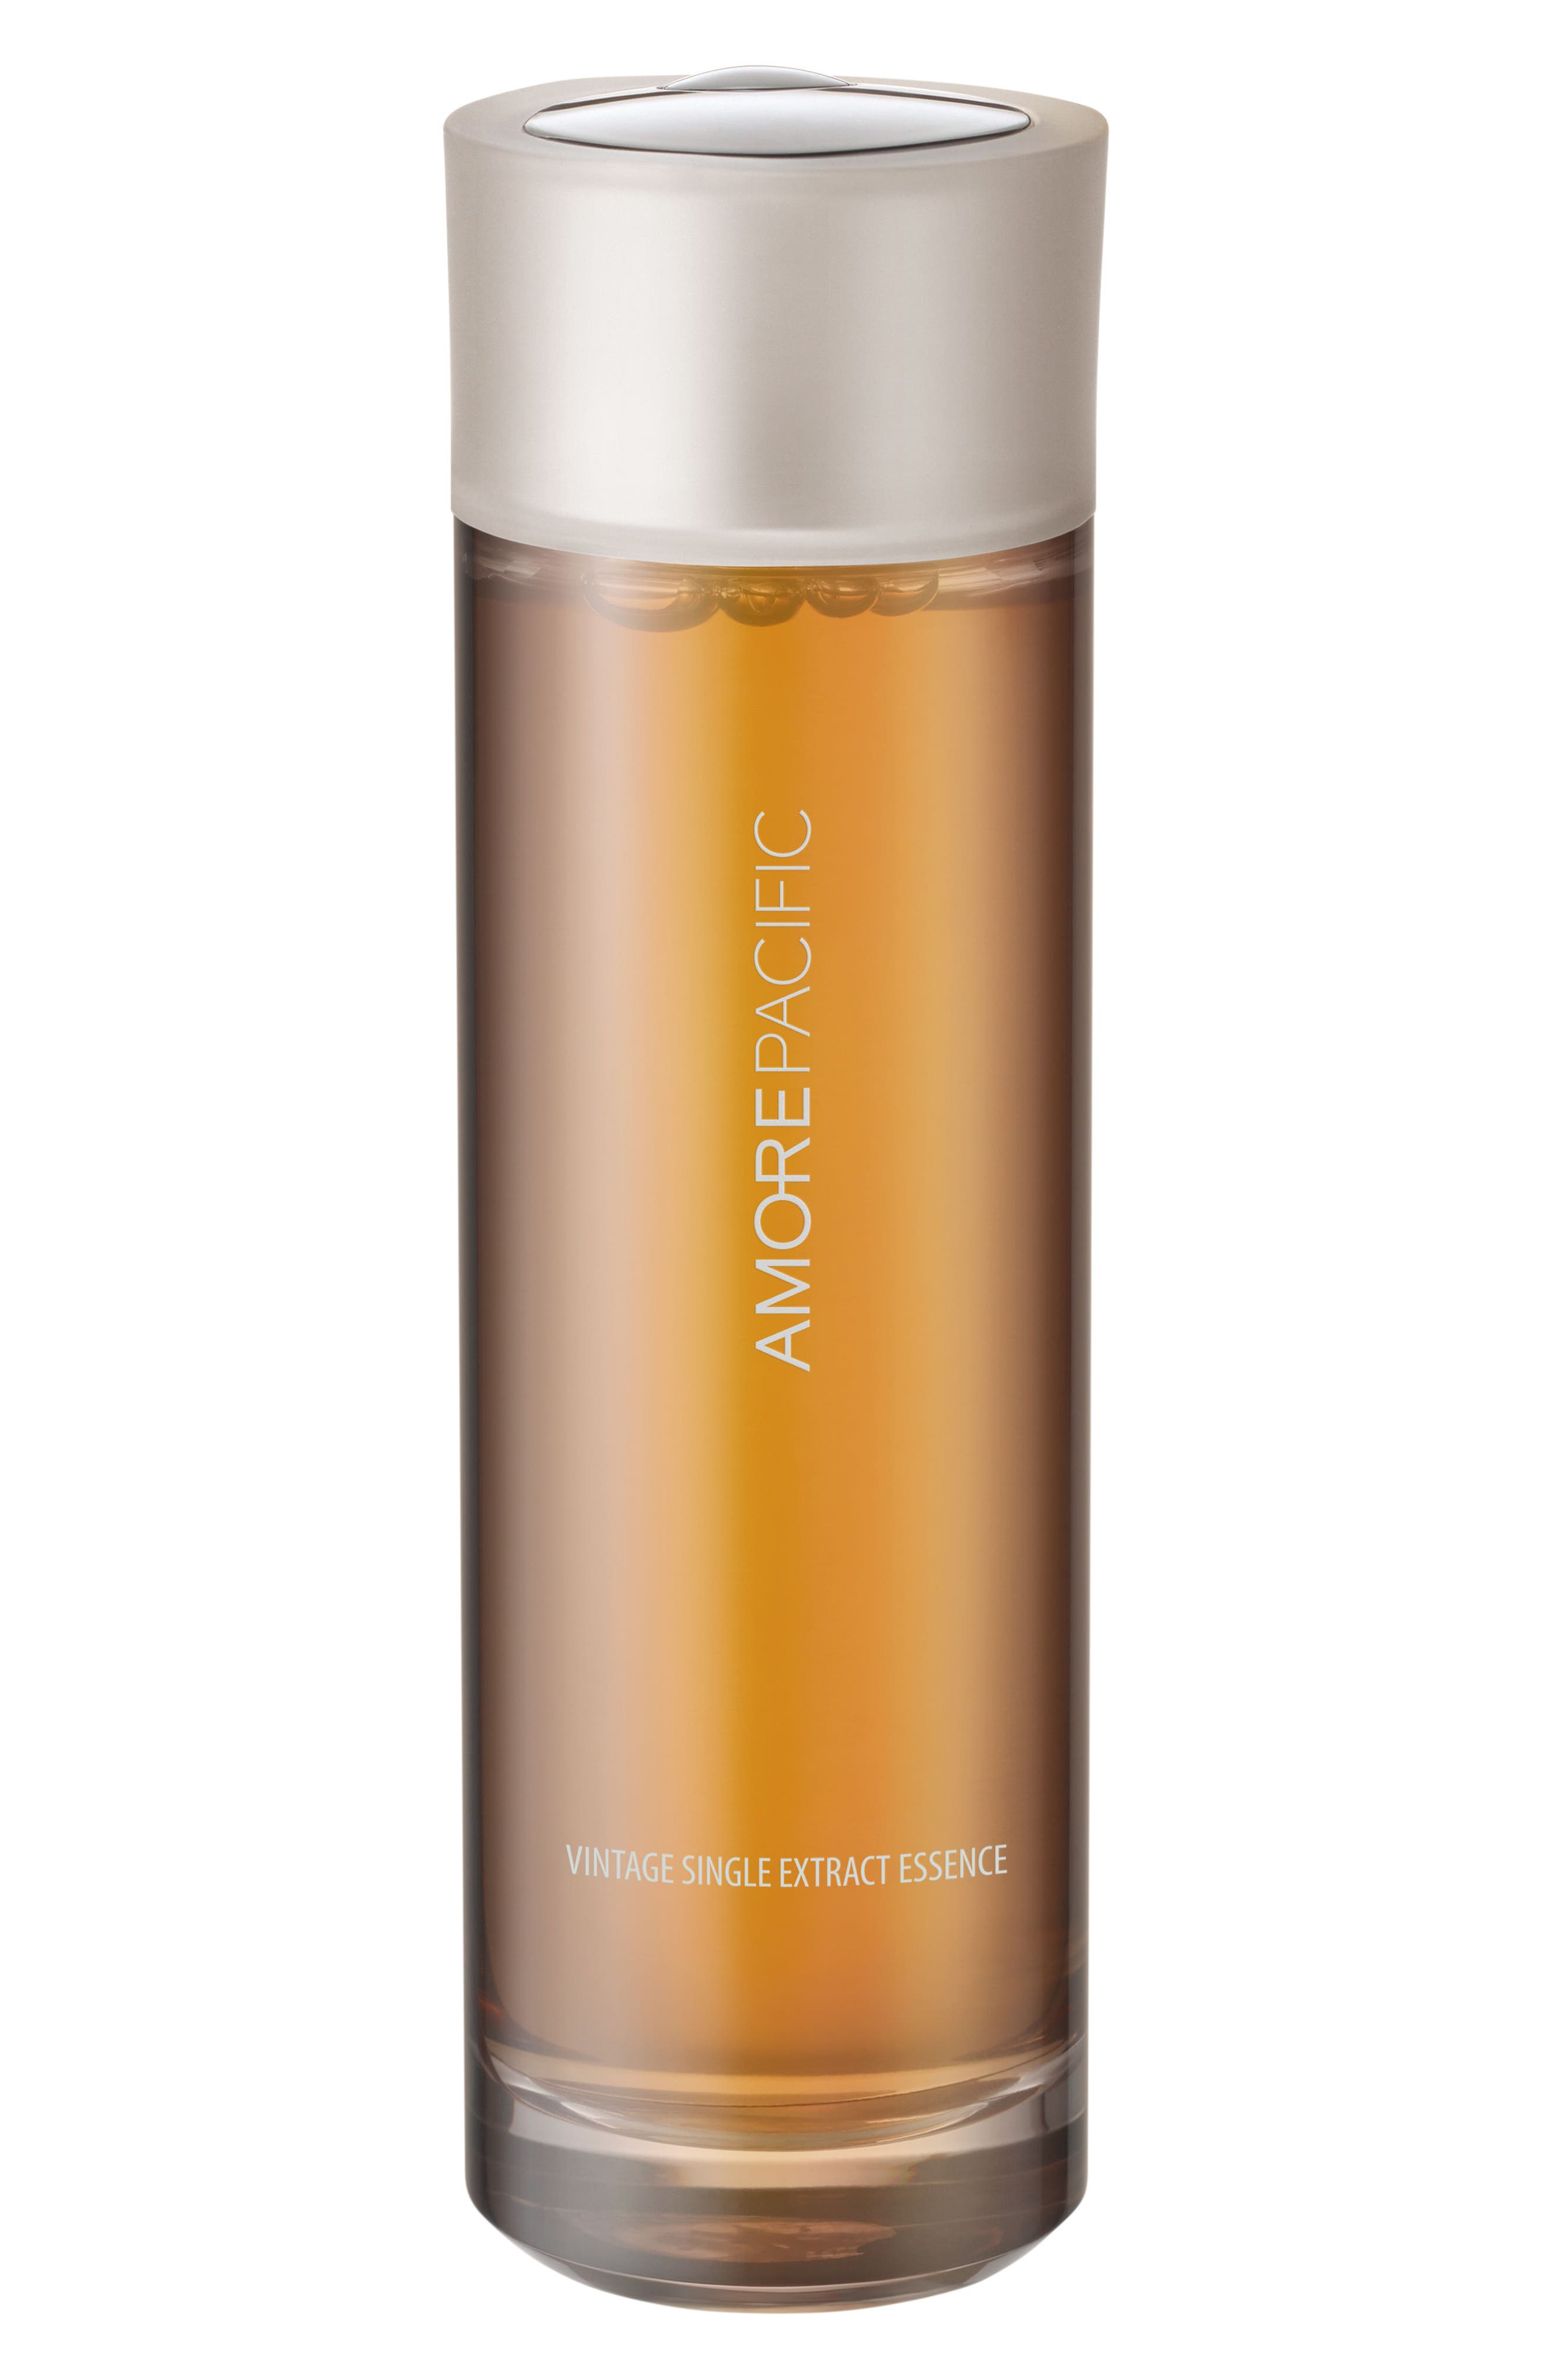 Alternate Image 1 Selected - AMOREPACIFIC Vintage Single Extract Essence (Nordstrom Exclusive)